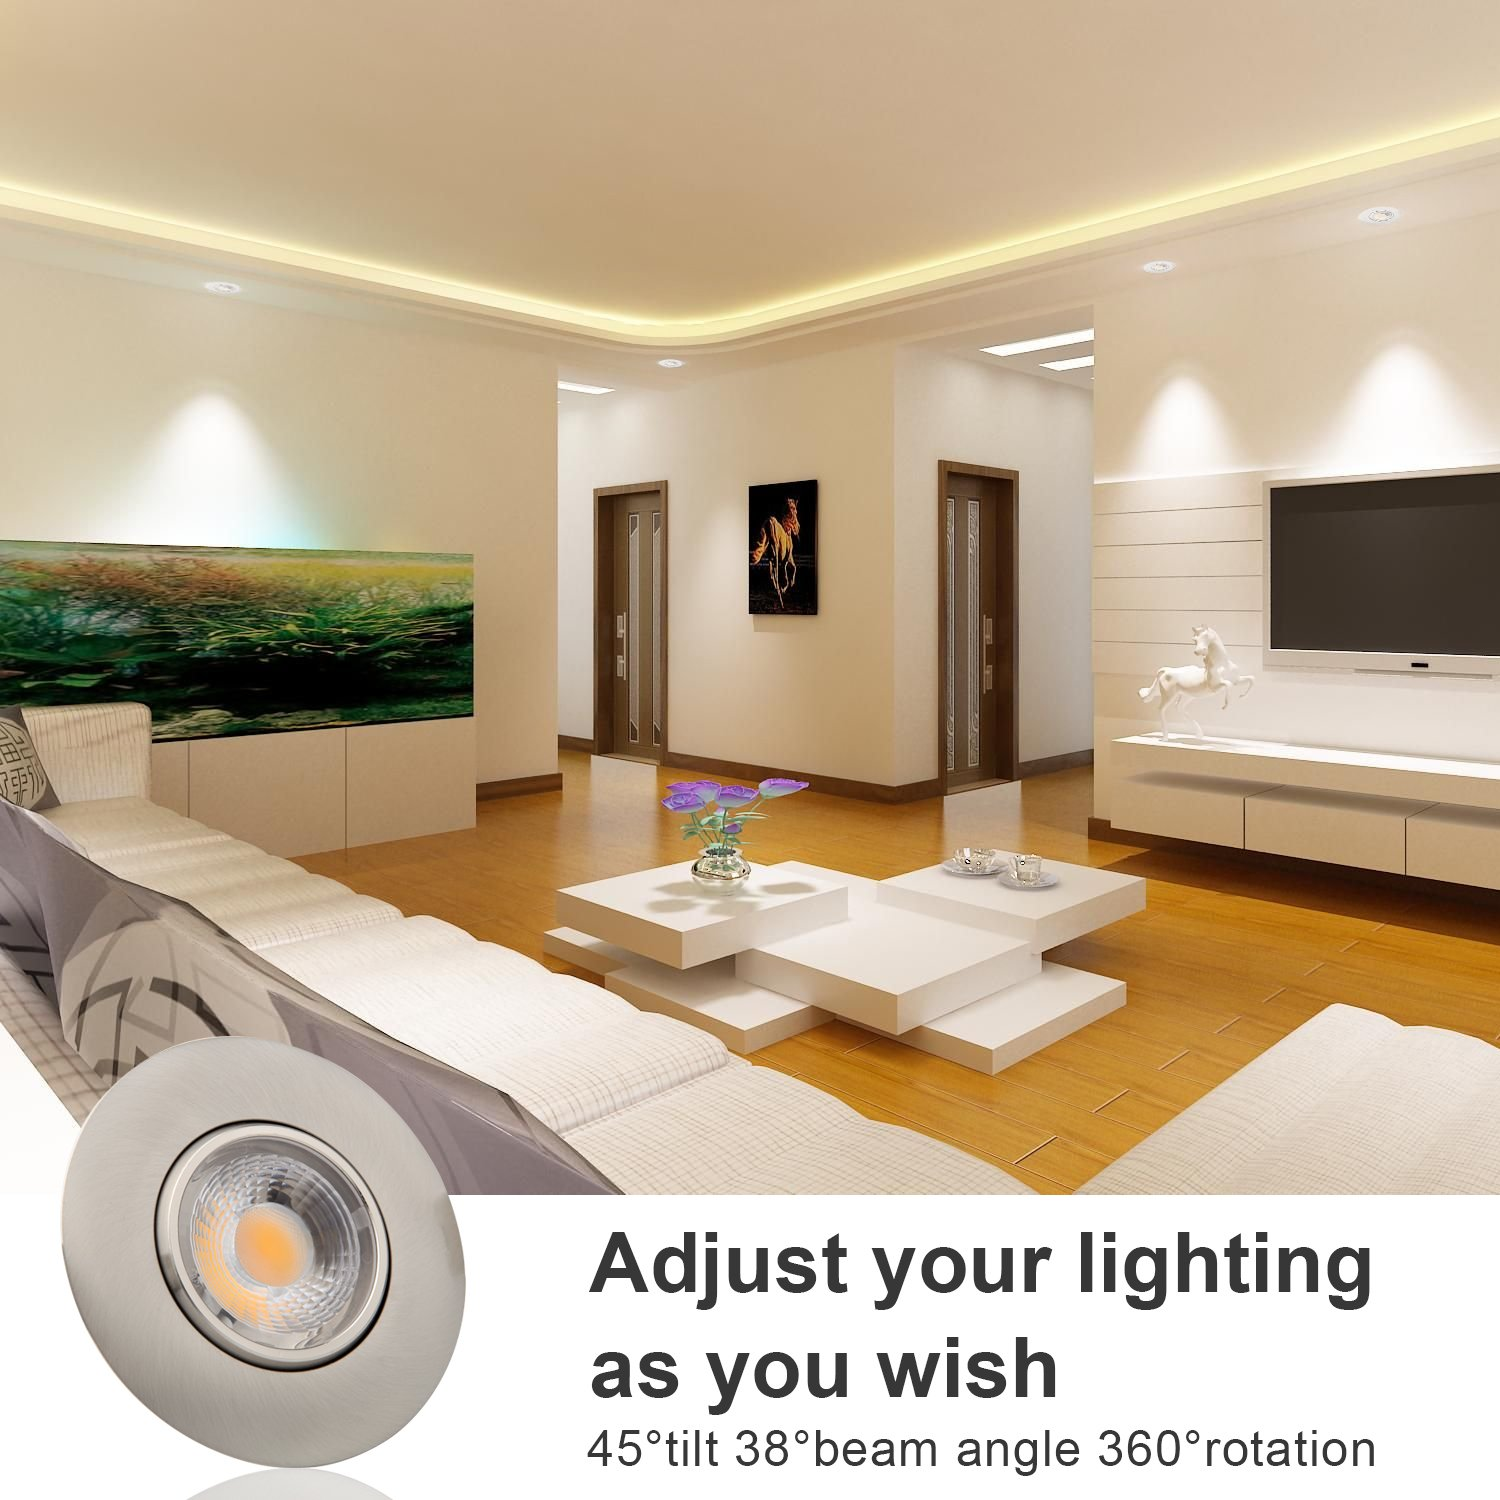 Led Recessed Light 3 Inch 8W 700 Lumens IC Rated Gimbal Adjustable Recessed LED Downlight Energy Star ETL Approved 1Pack 5000K Daylight White, Brushed Nickel